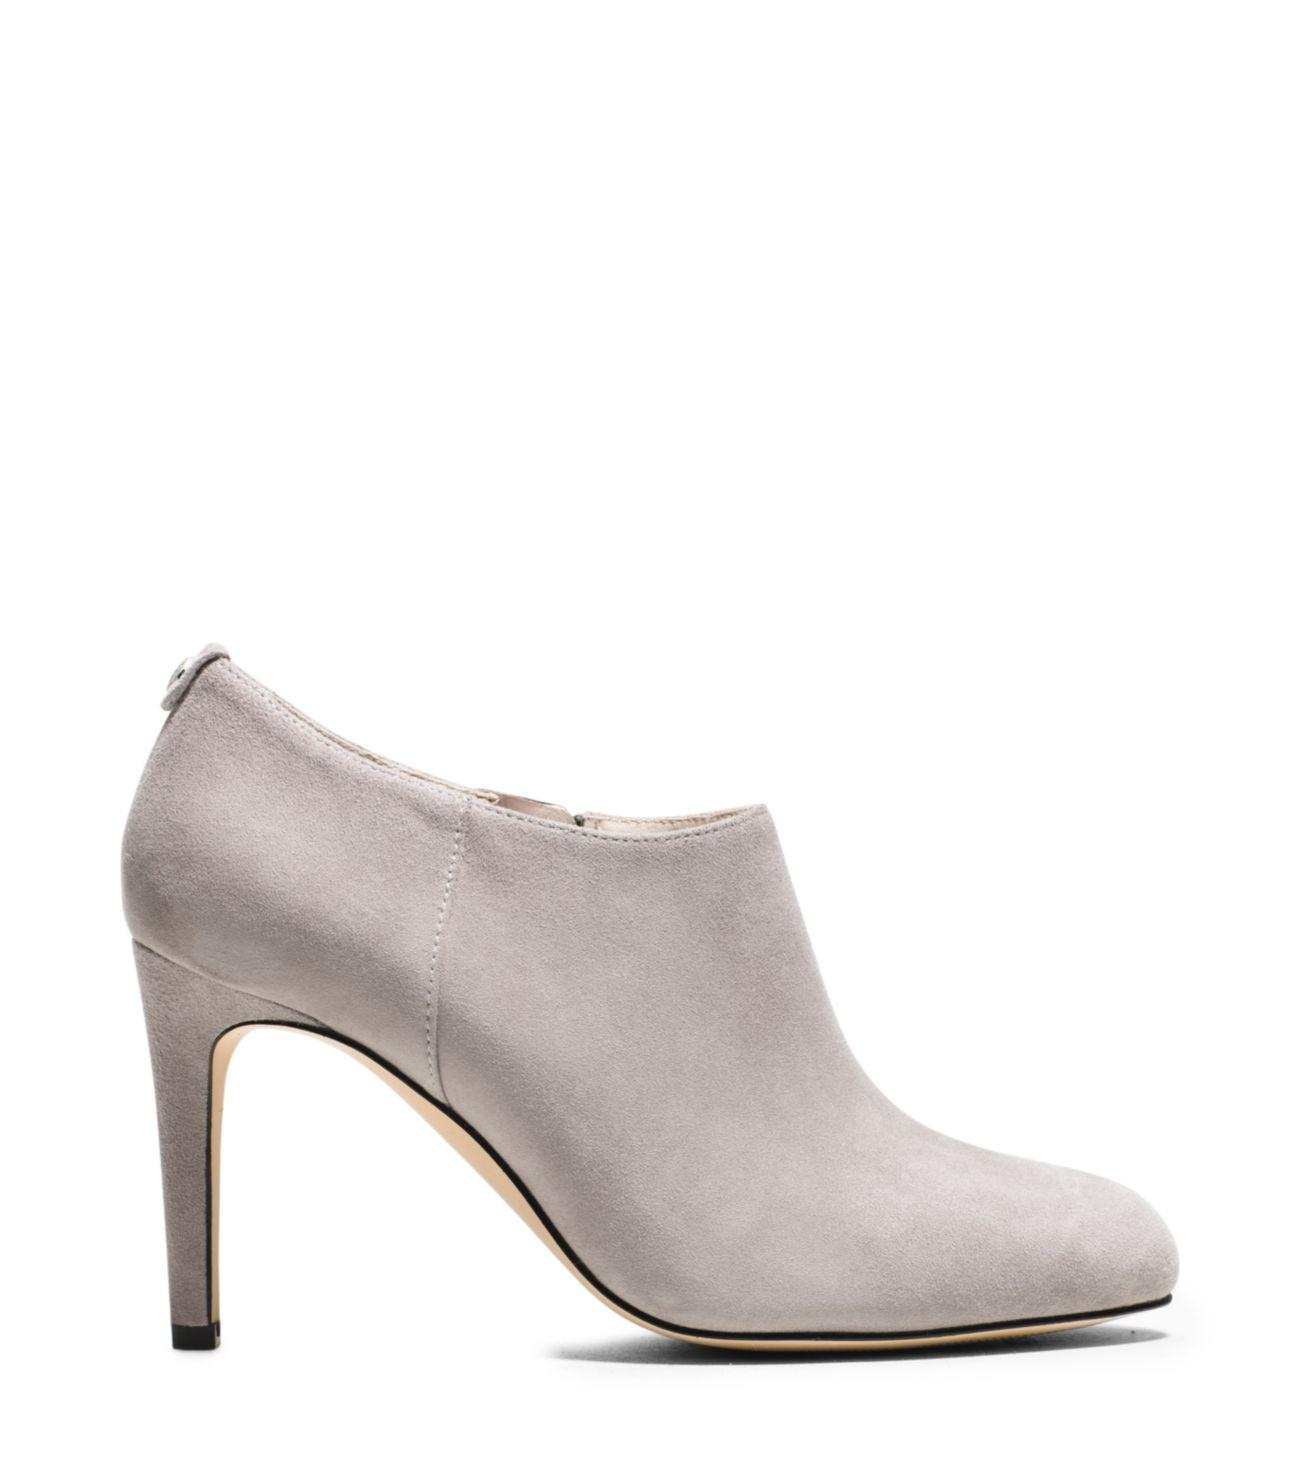 Michael Kors Sammy Suede Ankle Boot in Pearl Grey (White)